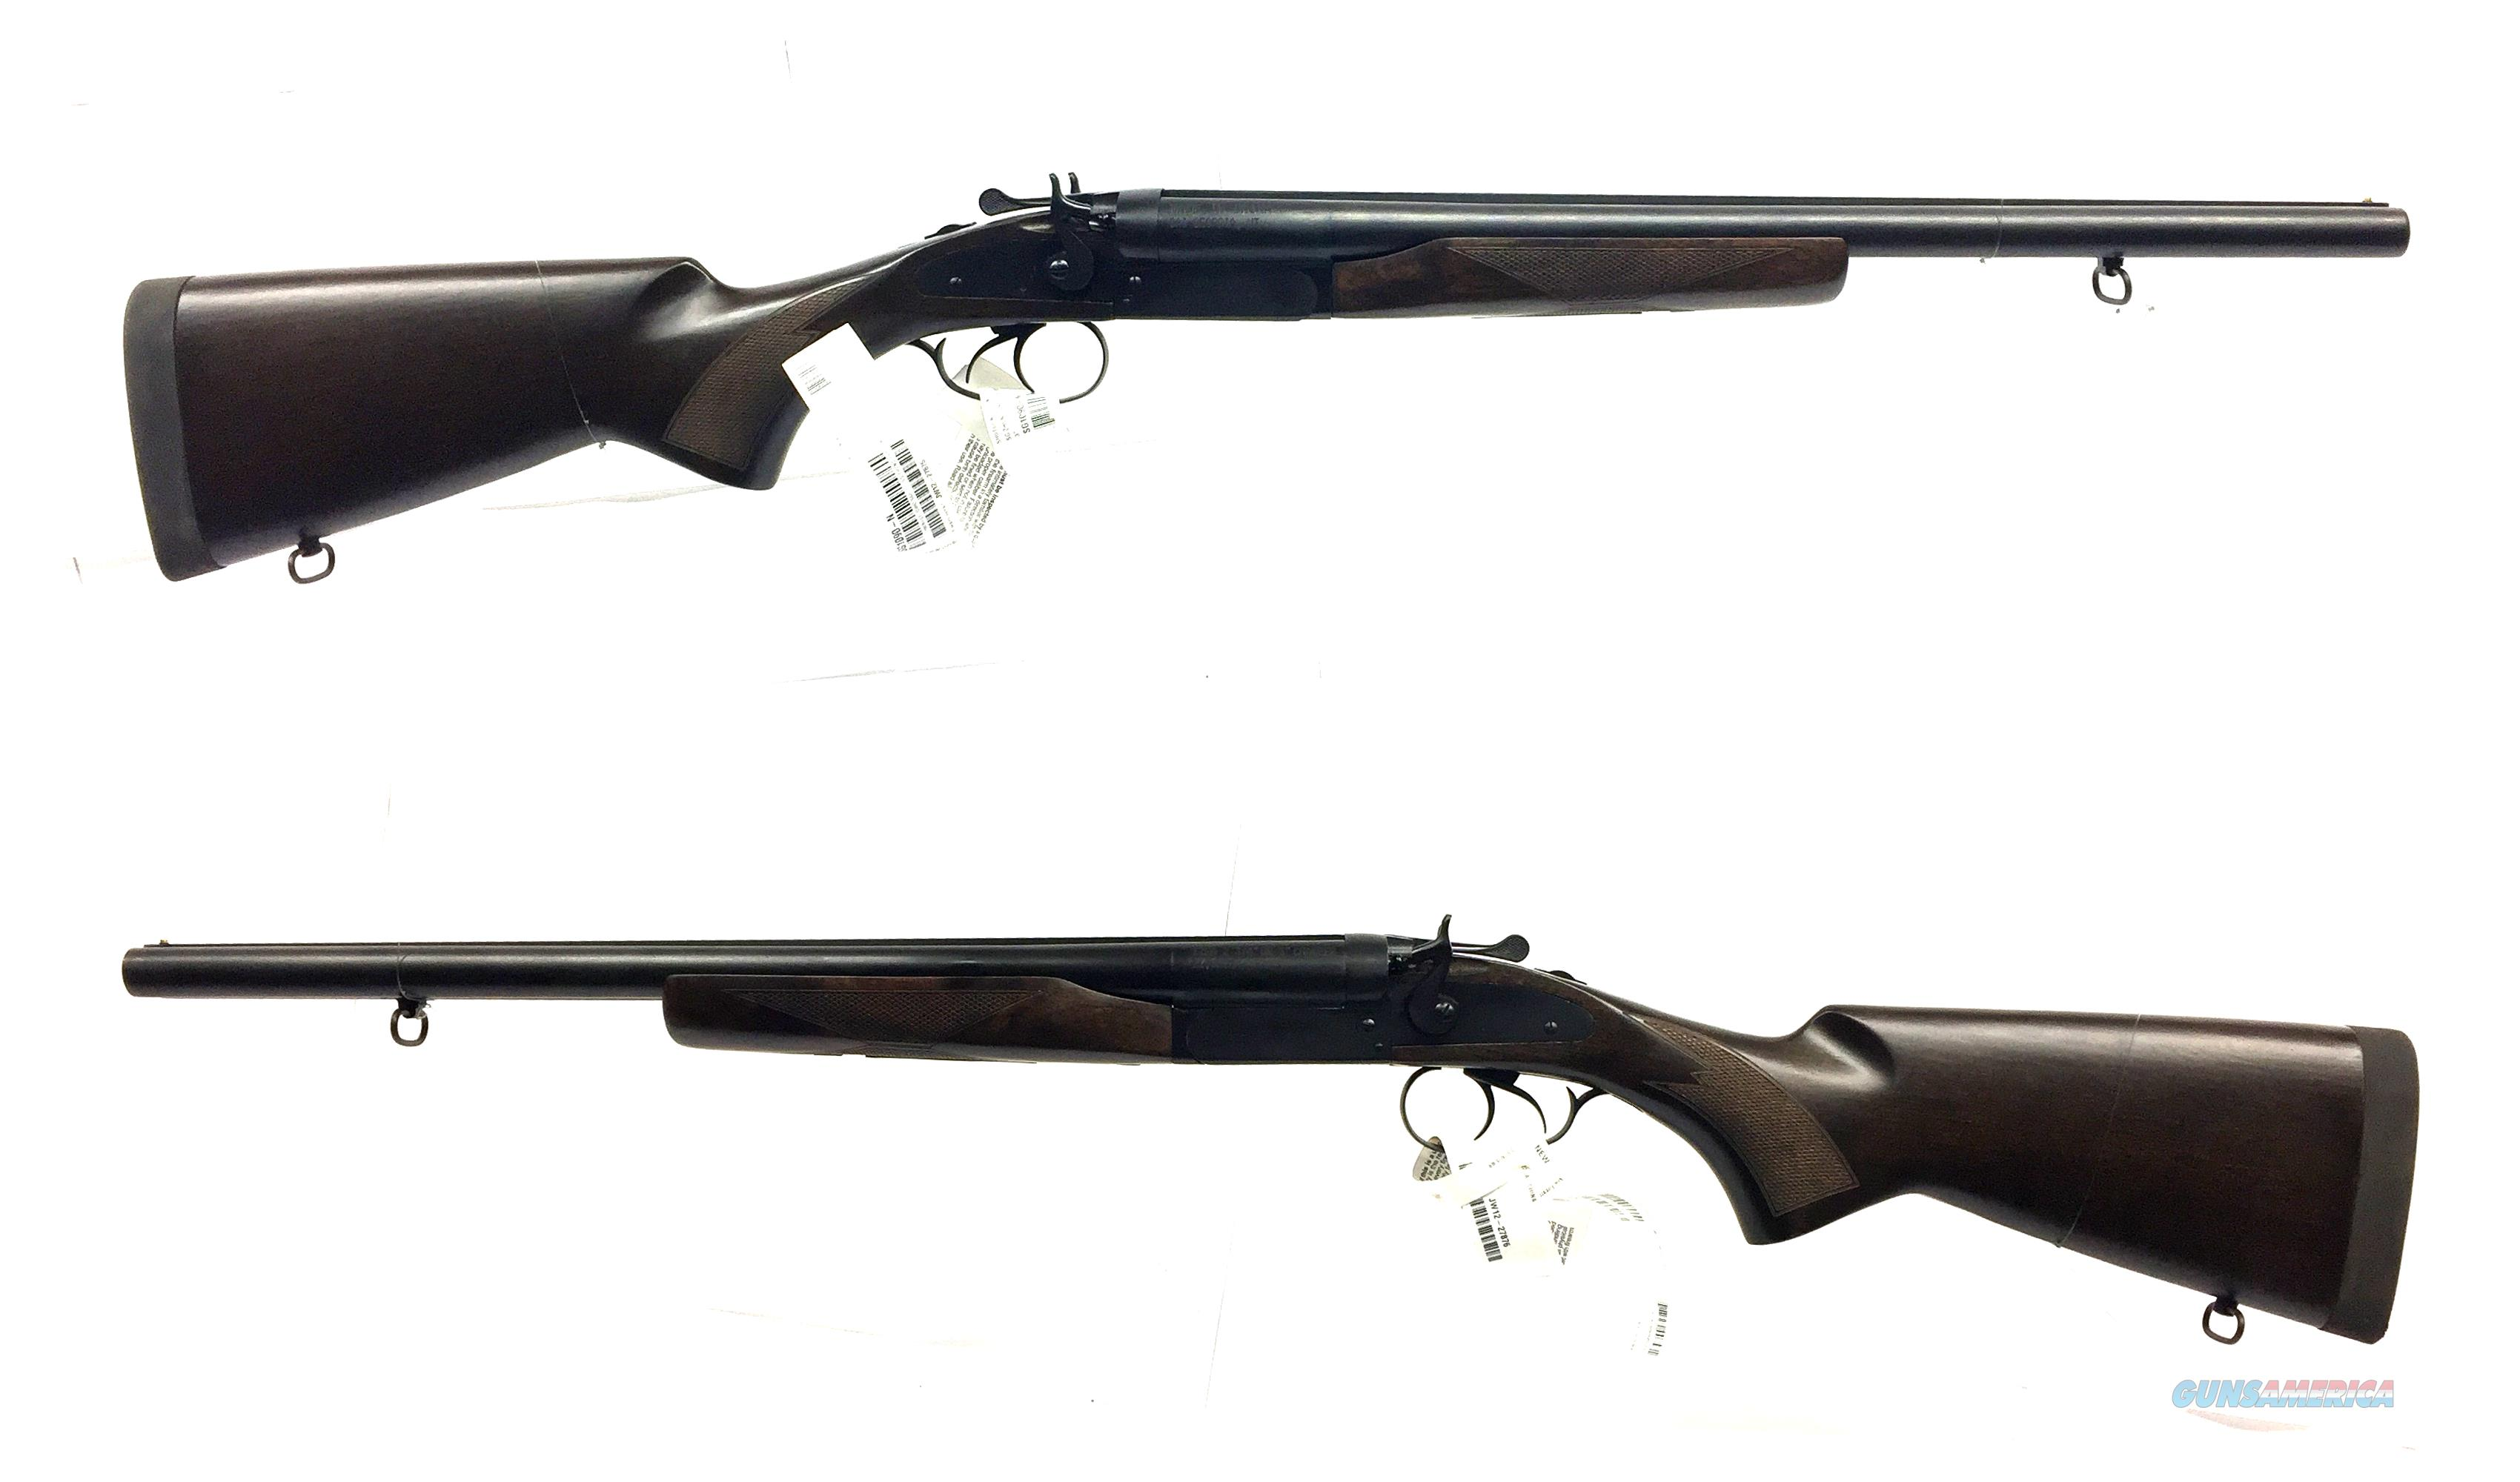 Zhong Zhou JW-2000 12GA SxS Shotgun  Guns > Shotguns > Century International Arms - Shotguns > Shotguns